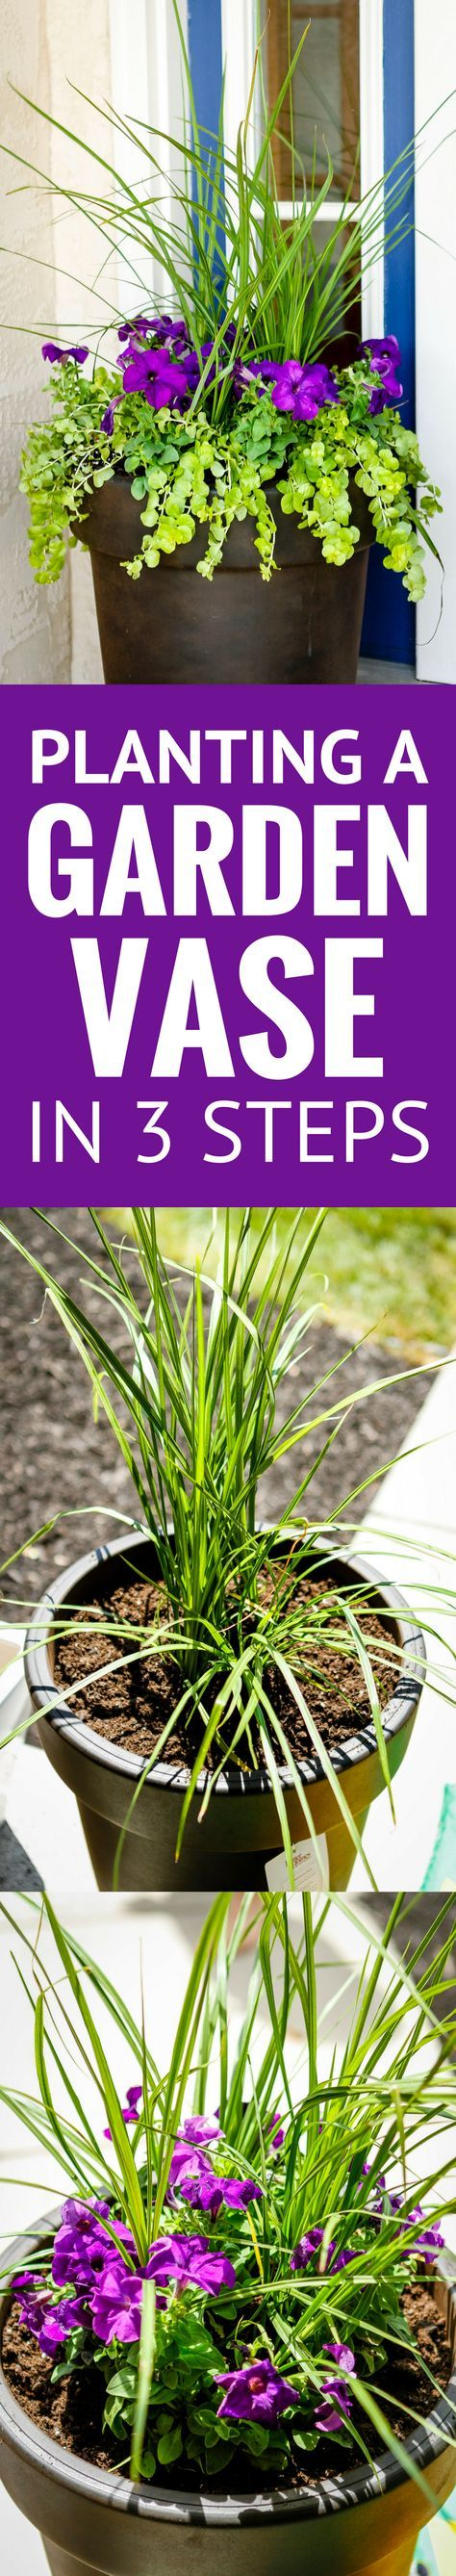 Planting a Perfectly Proportioned Garden Vase -- Pinned over 105,000 times! 3 easy steps to planting a garden vase that will be a beautiful focal point for your front porch, patio or deck! | how to plant flowers in large planters | how to plant flowers in pots outdoors | how to plant outdoor planters | planting in pots ideas | find the tutorial on unsophisticook.com